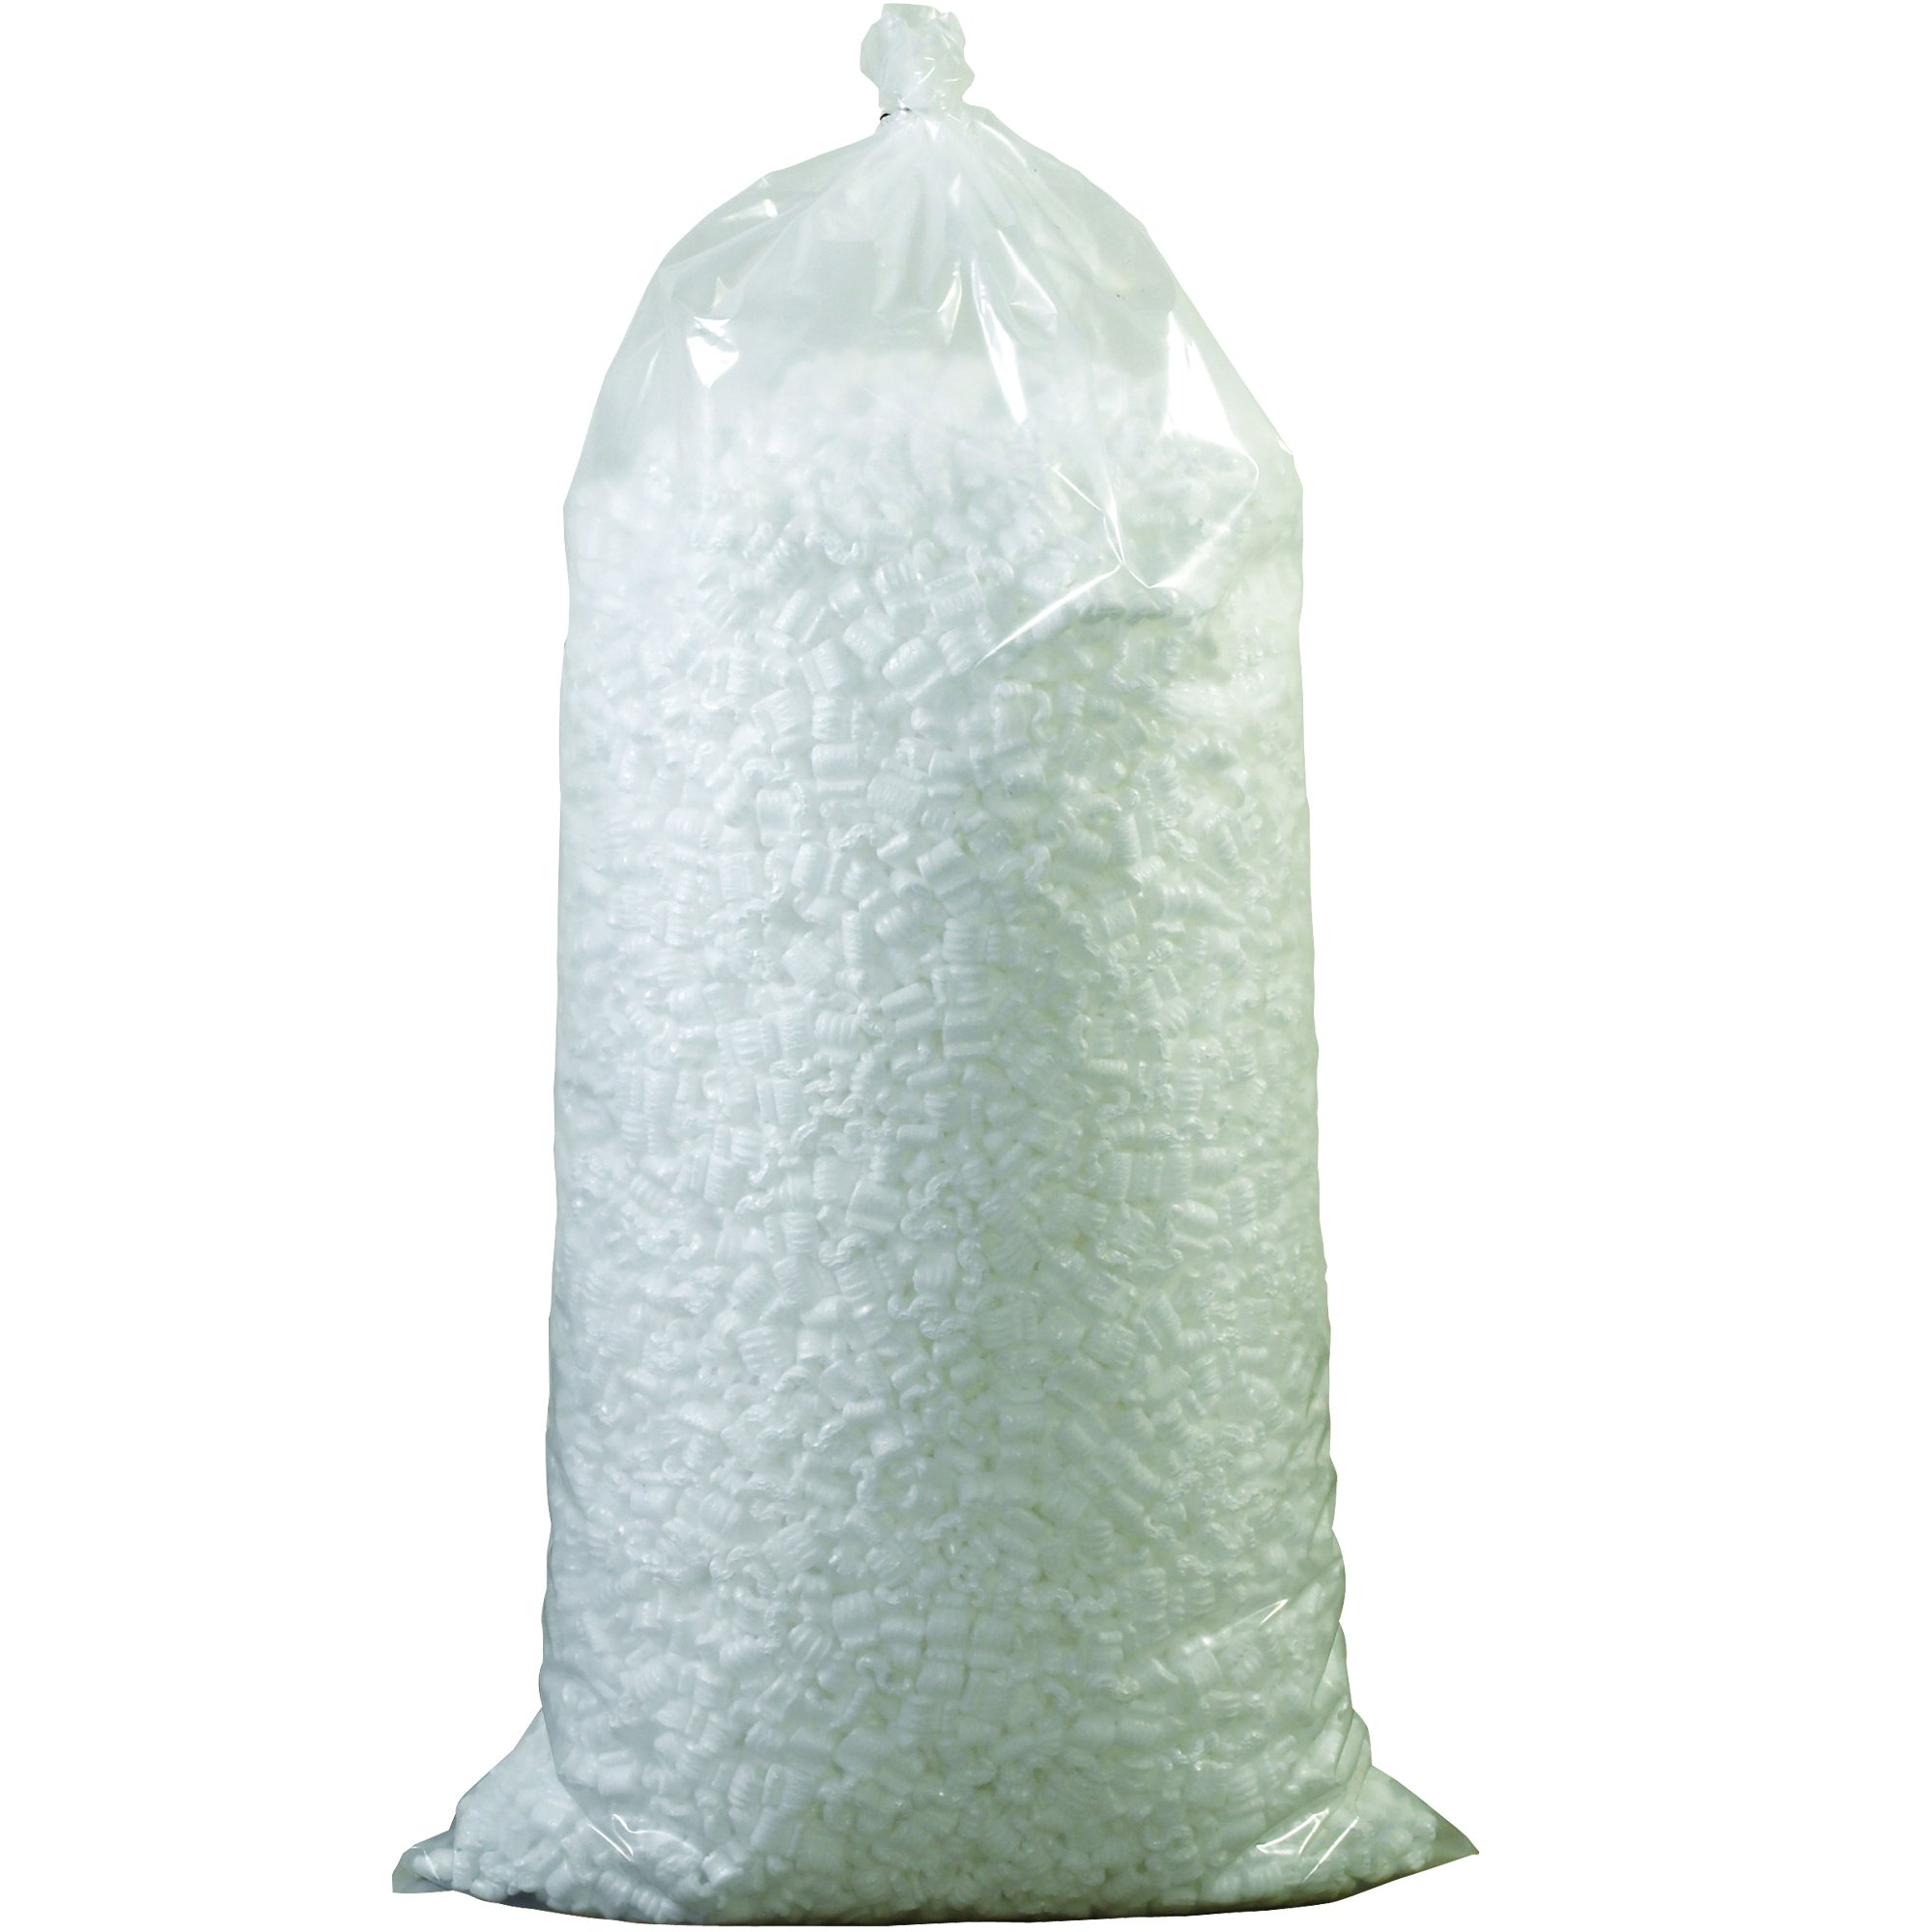 Partners Brand P7NUTSW Loose Fill Packing Peanuts, 7 Cubic Feet, White by Partners Brand